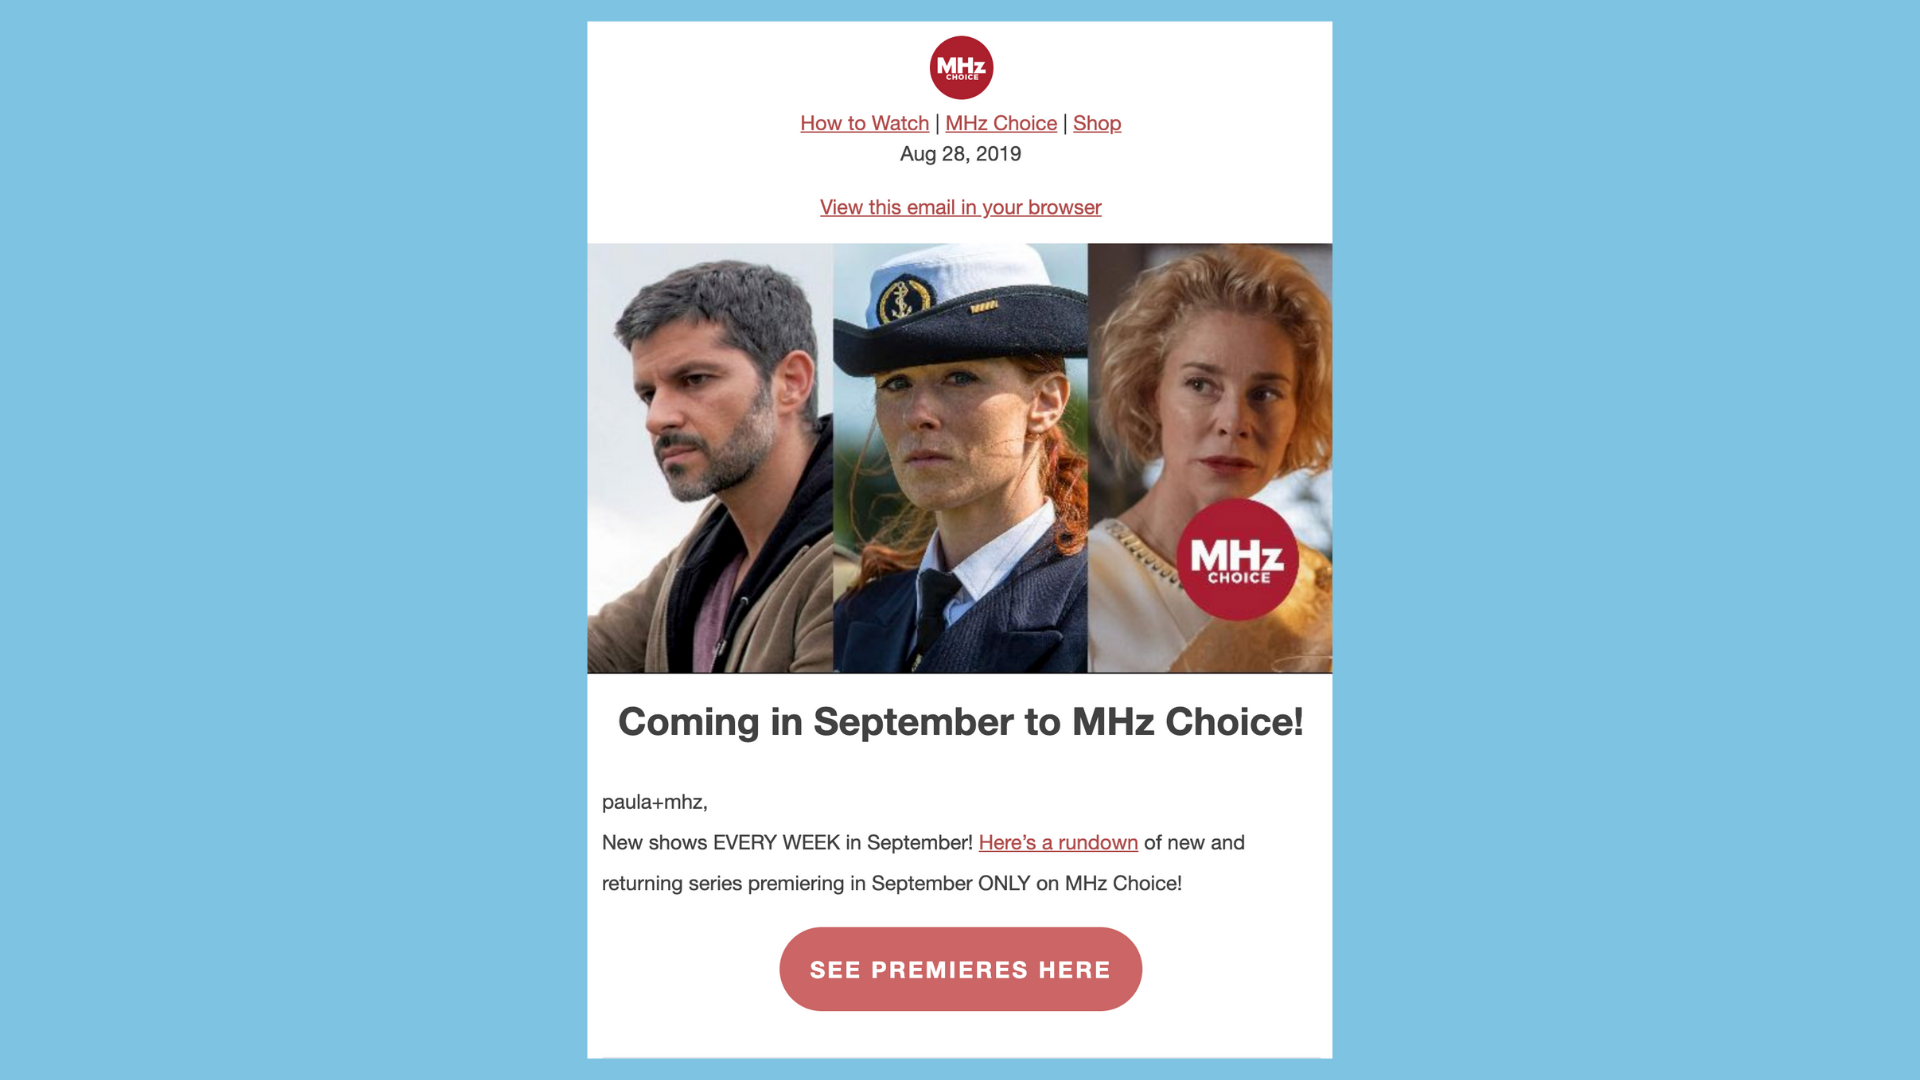 MHz Choice OTT email example